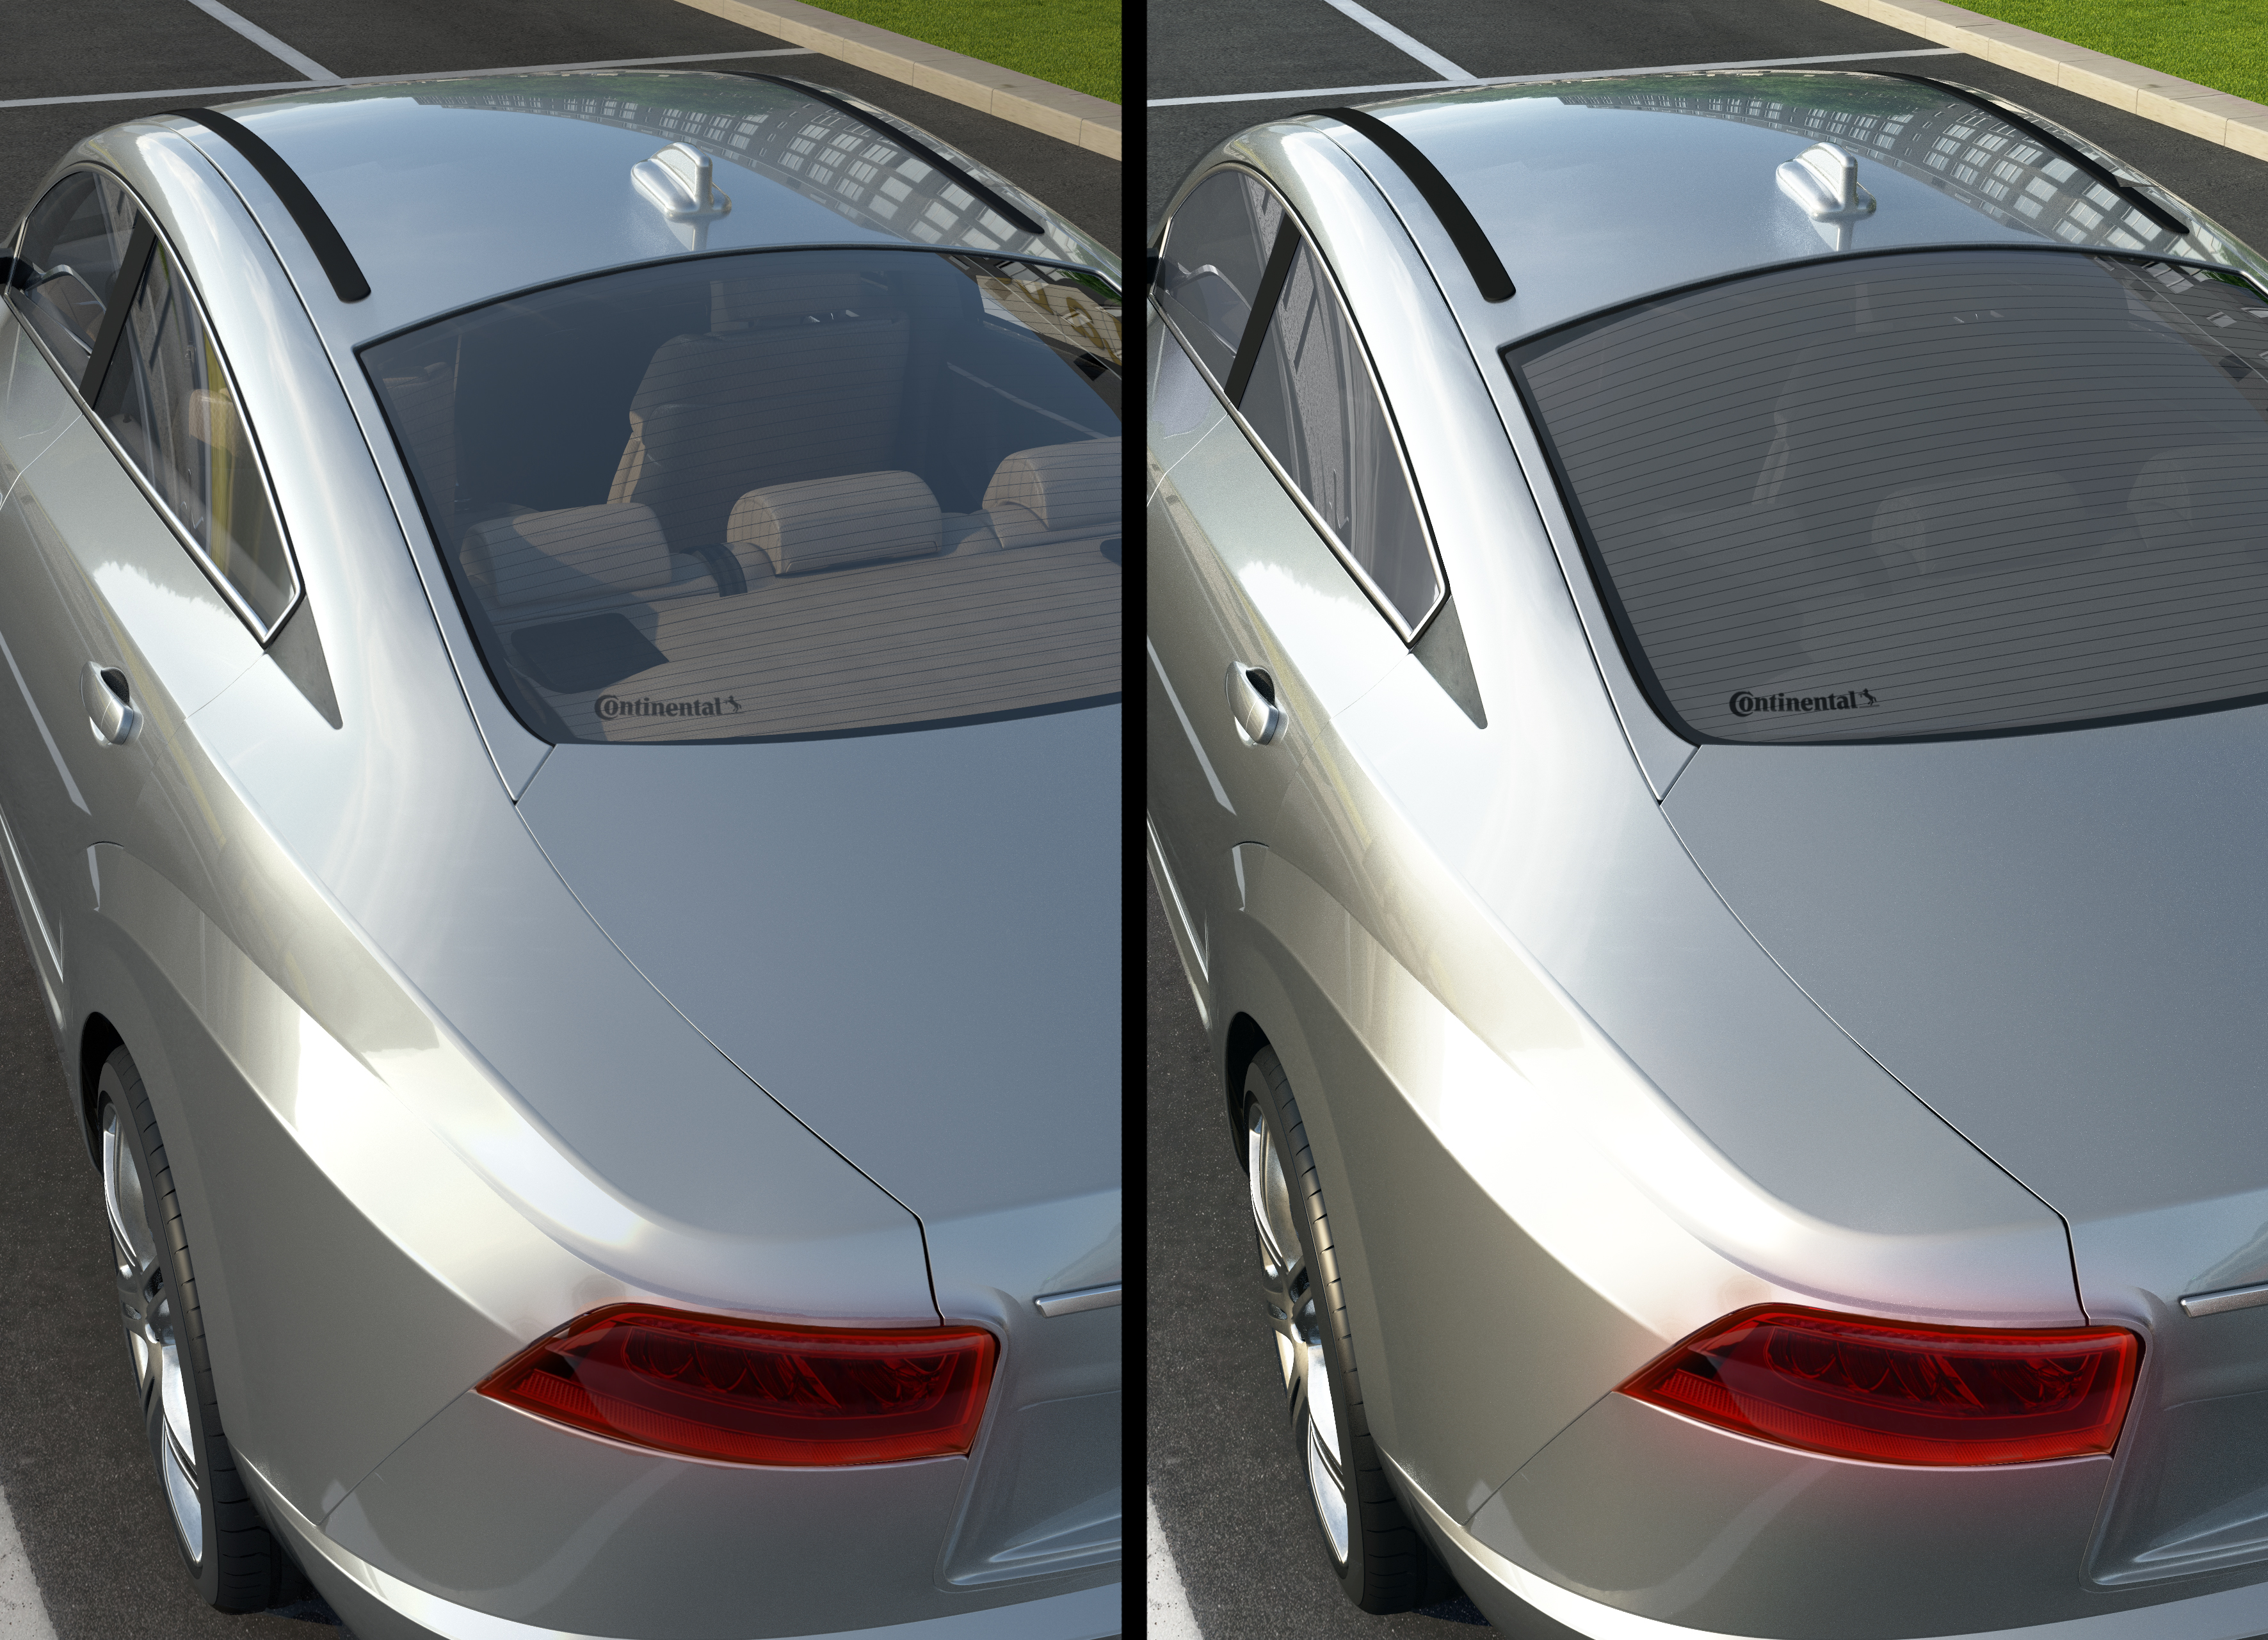 Continental Unveils Intelligent Car Windows That Can Tint